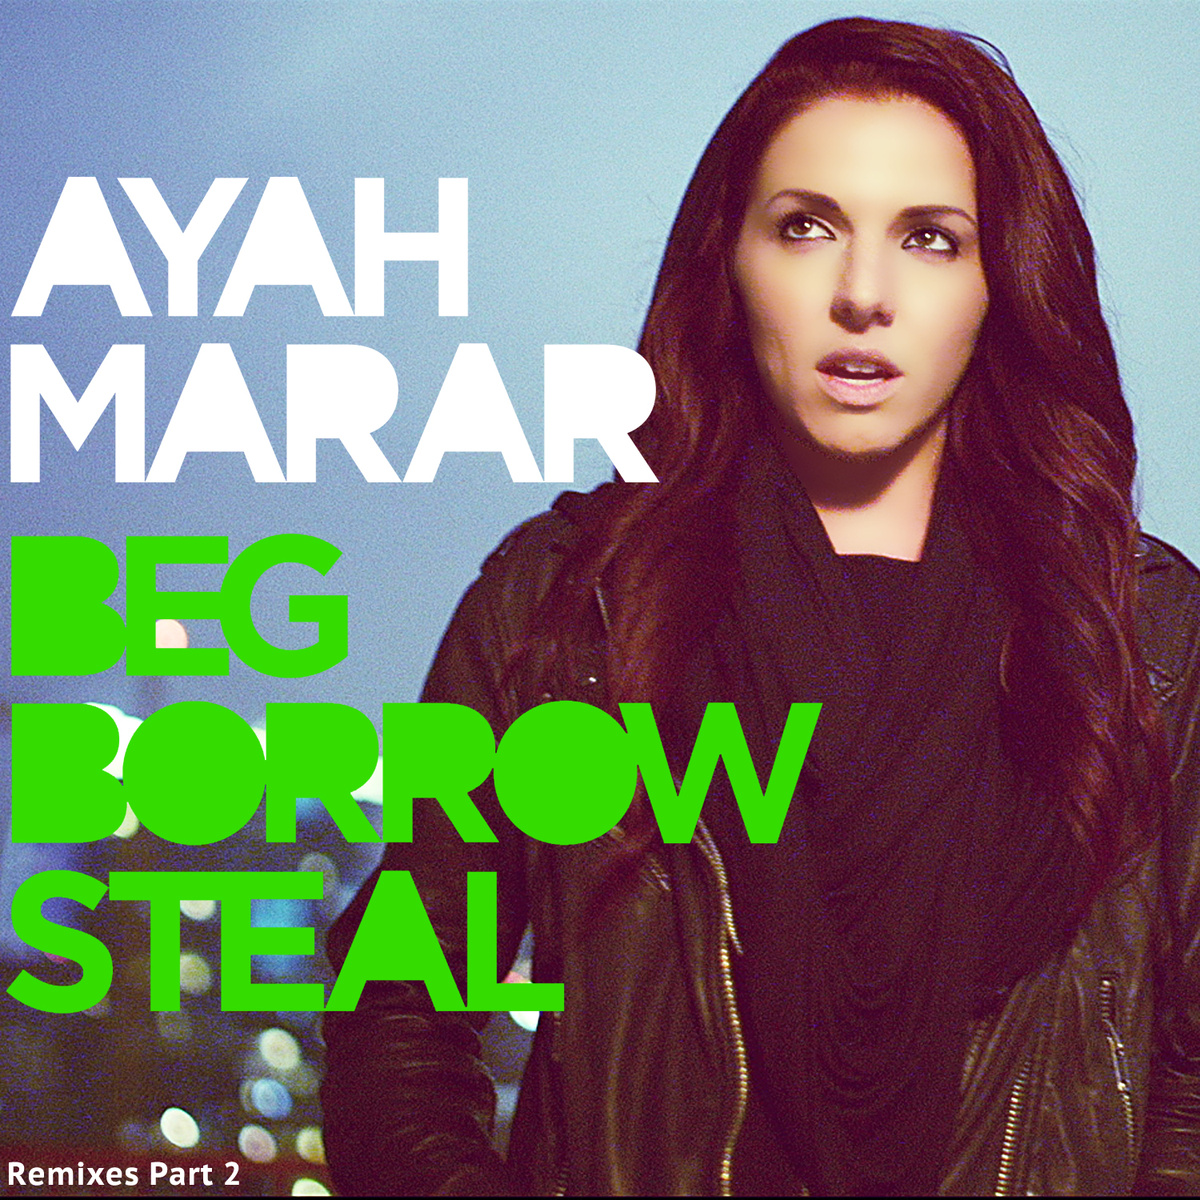 Ayah Marar – Beg Borrow Steal (Michael Gray Radio Edit)